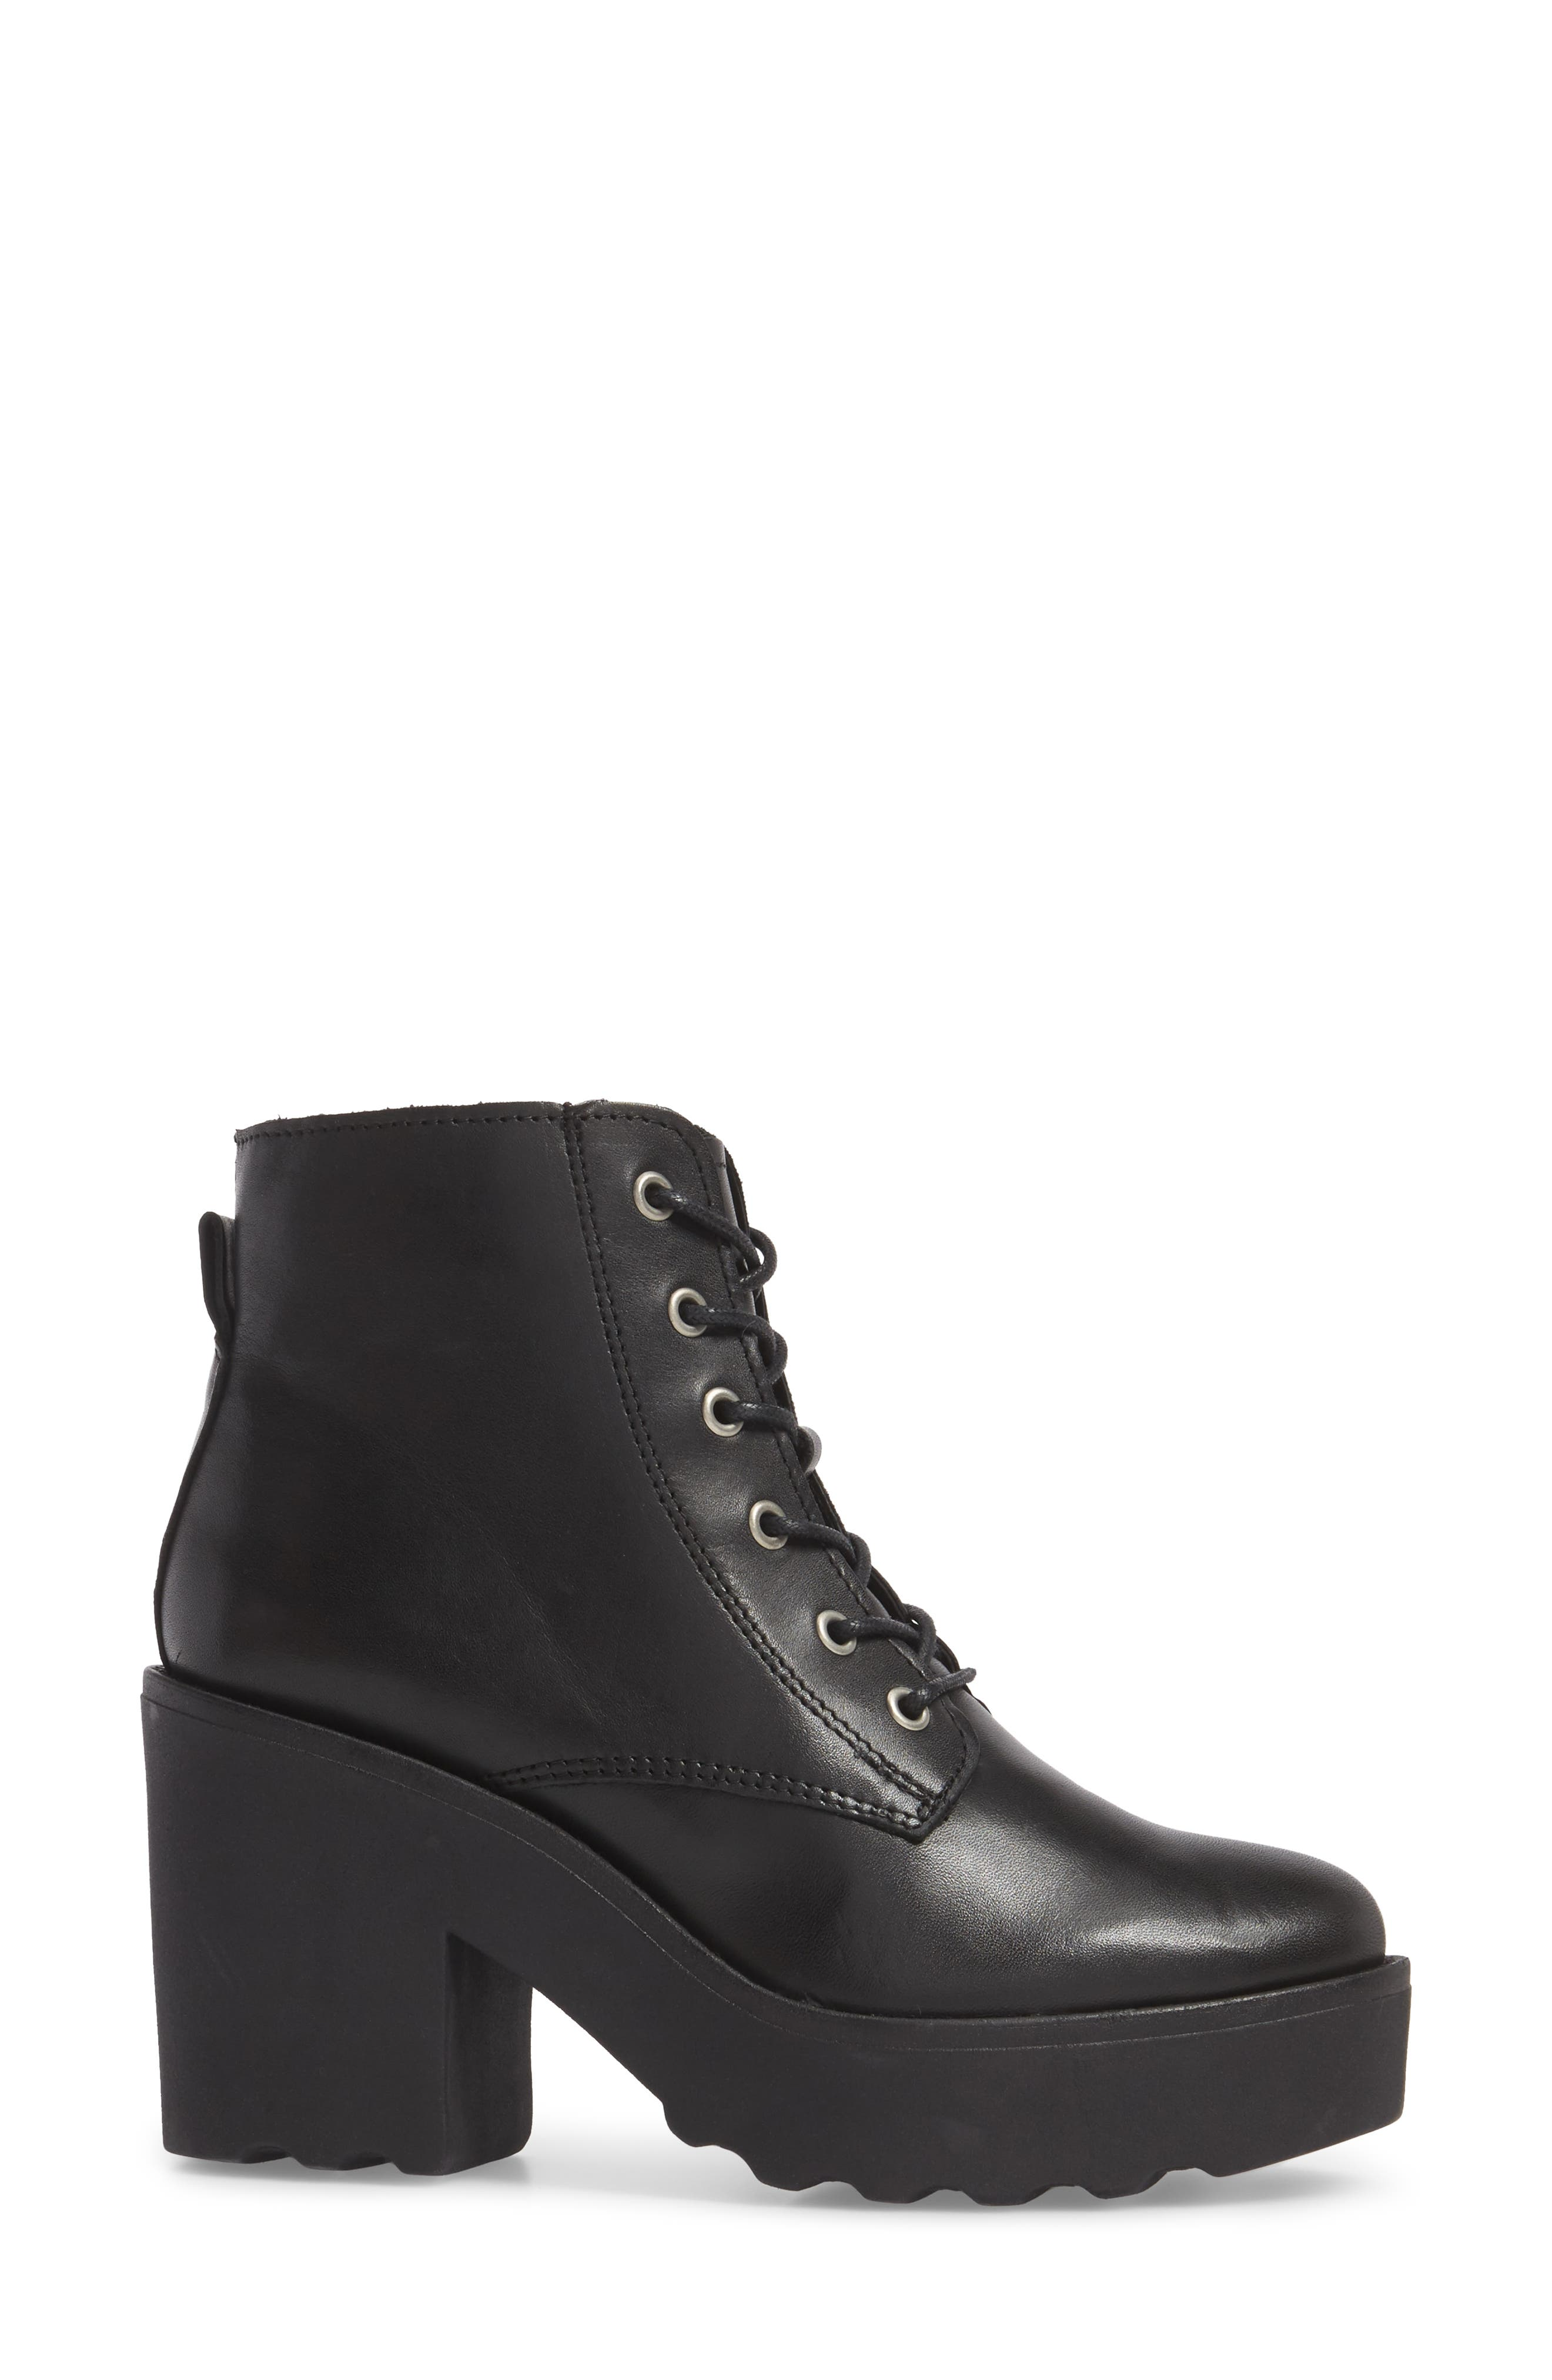 Gusto Boot,                             Alternate thumbnail 3, color,                             Black Leather